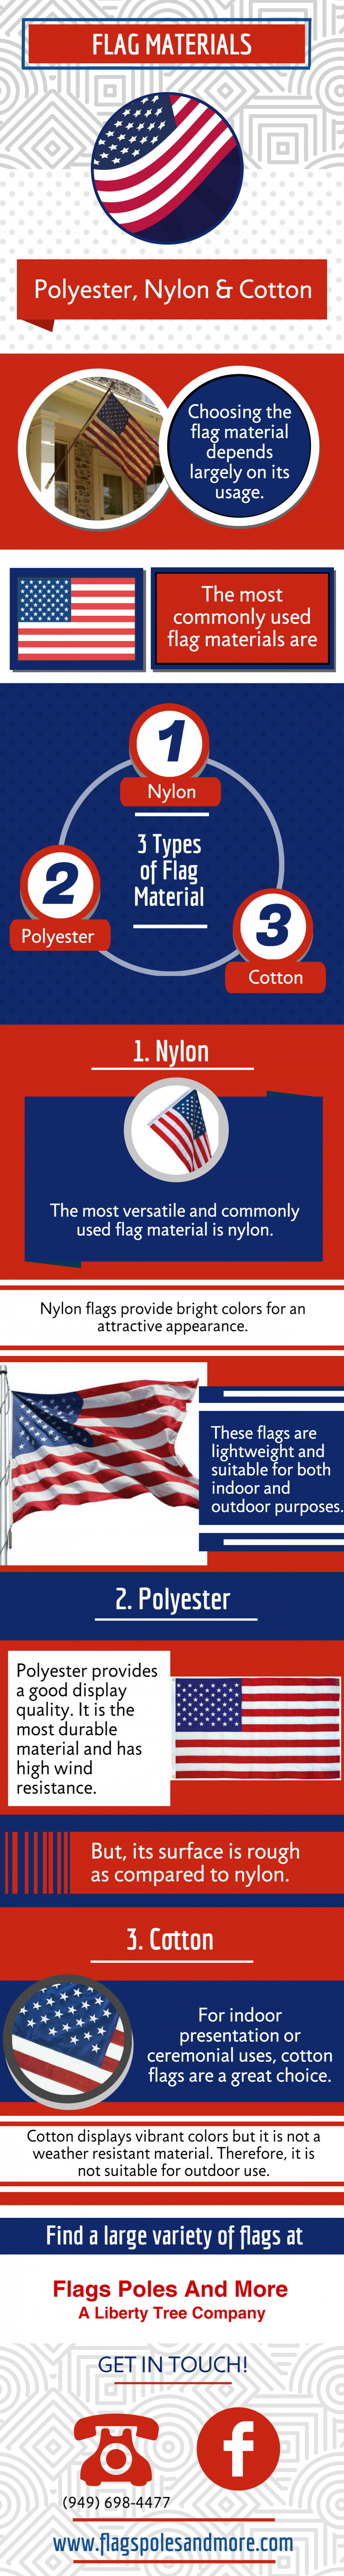 US Flag Materials Infographic